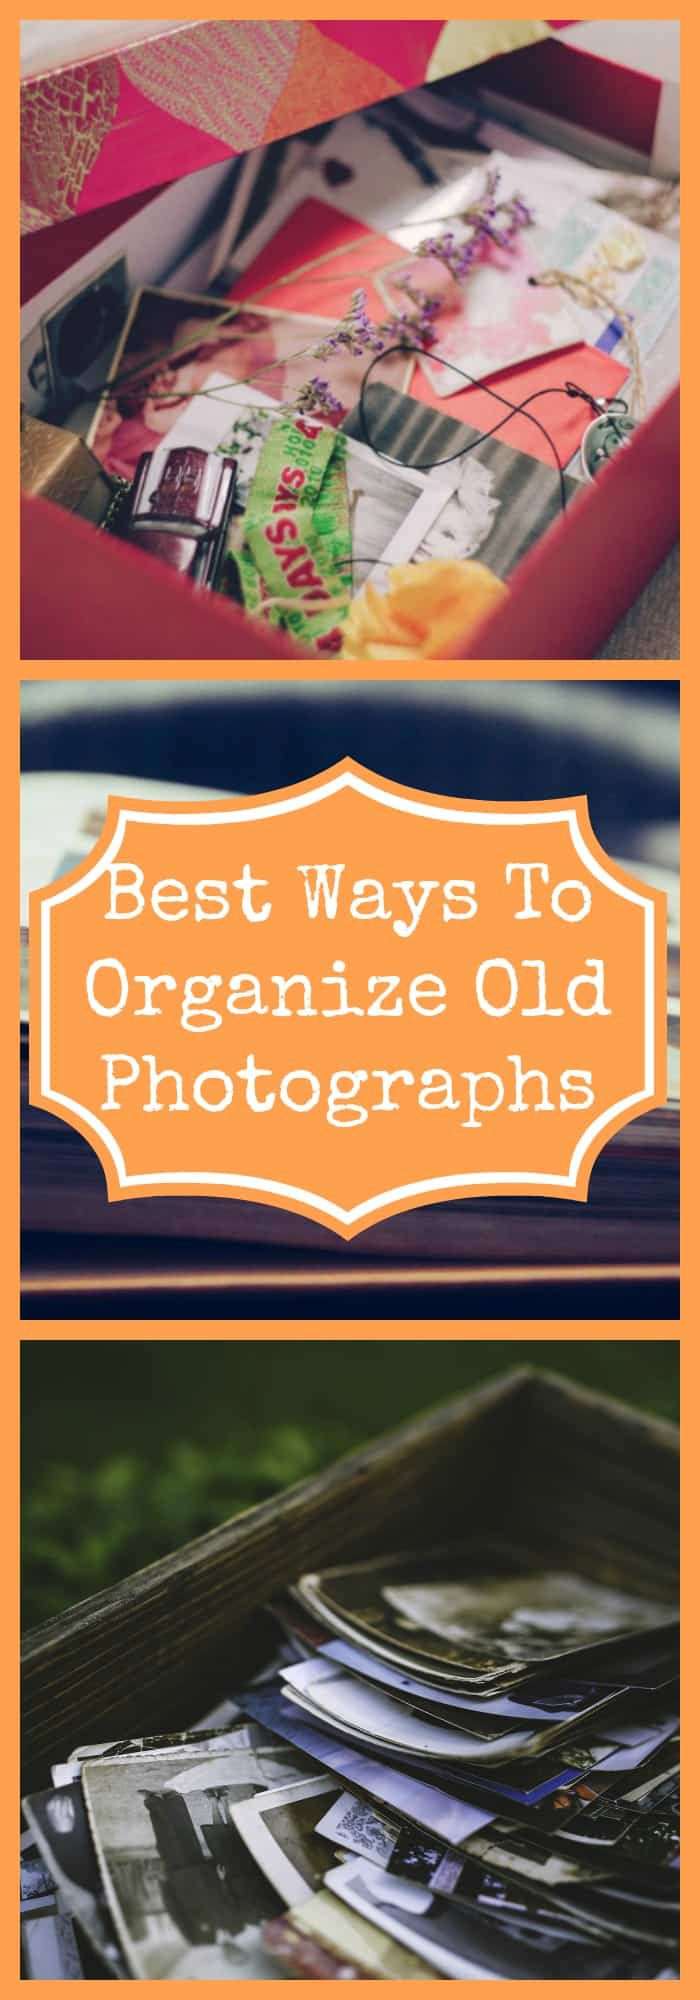 Best Ways to Organize Old Photographs